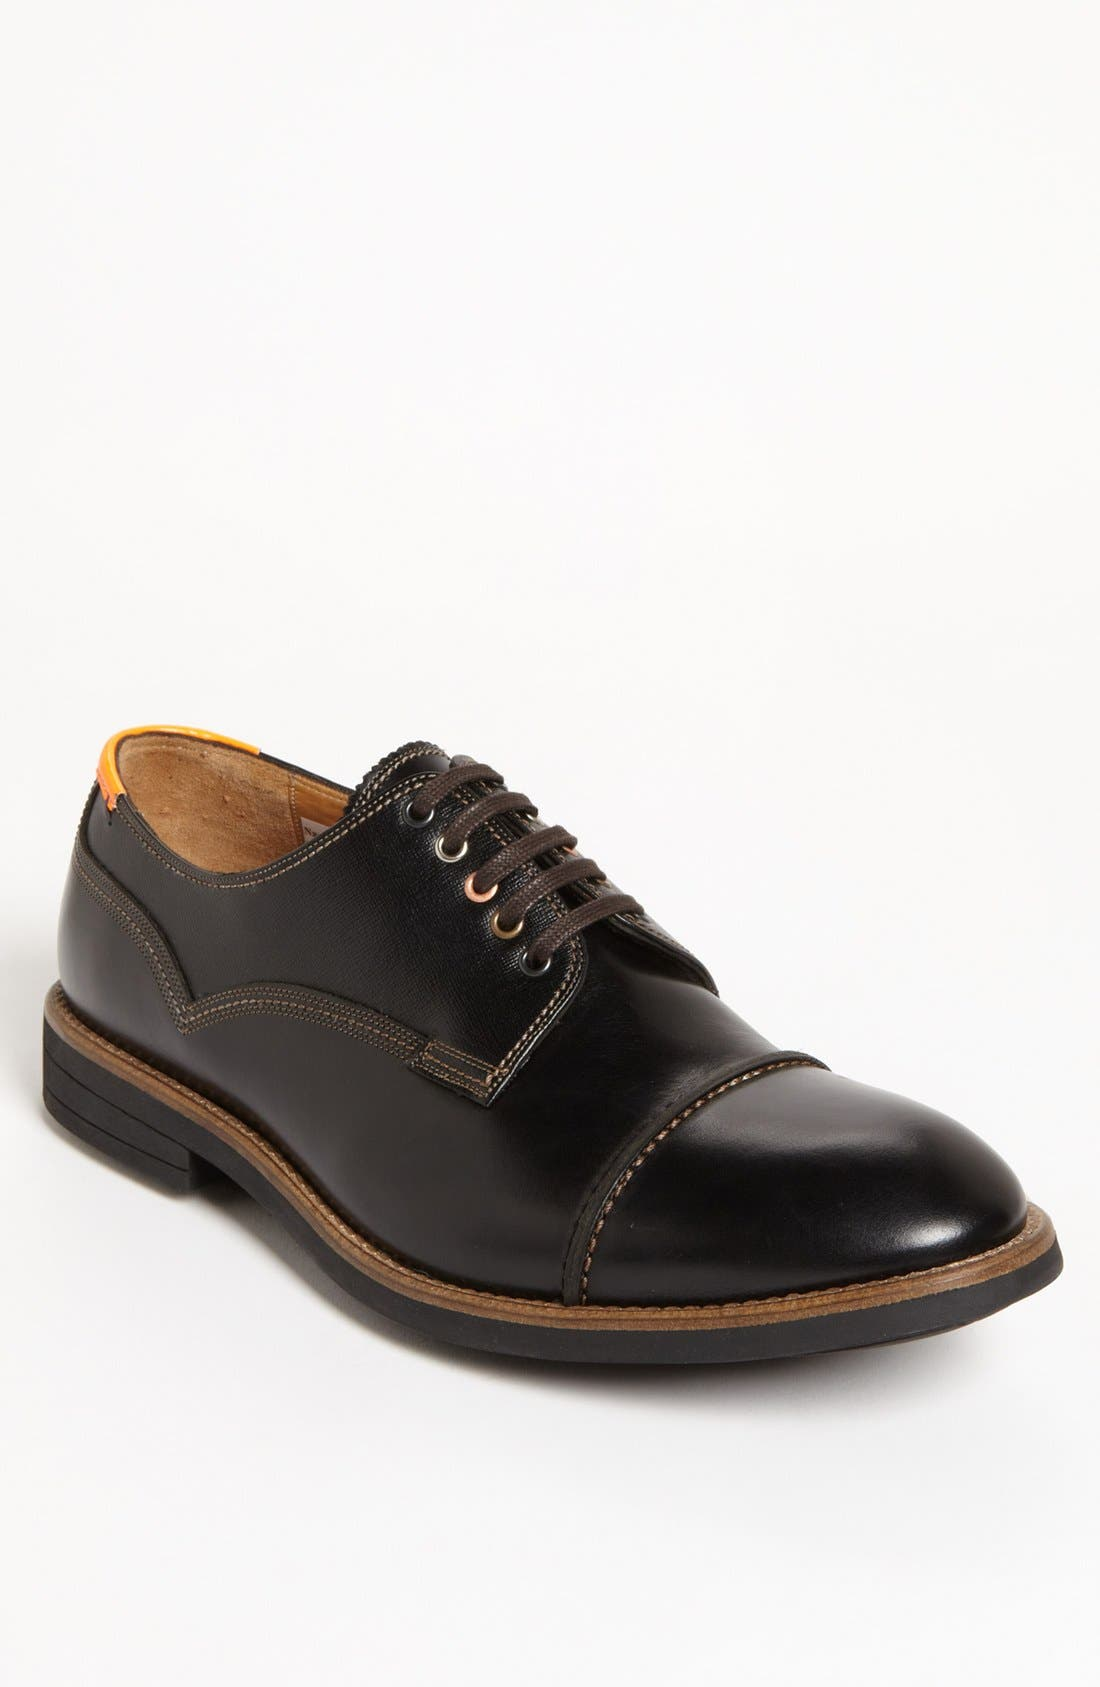 Main Image - Paul Smith 'Skull' Cap Toe Derby